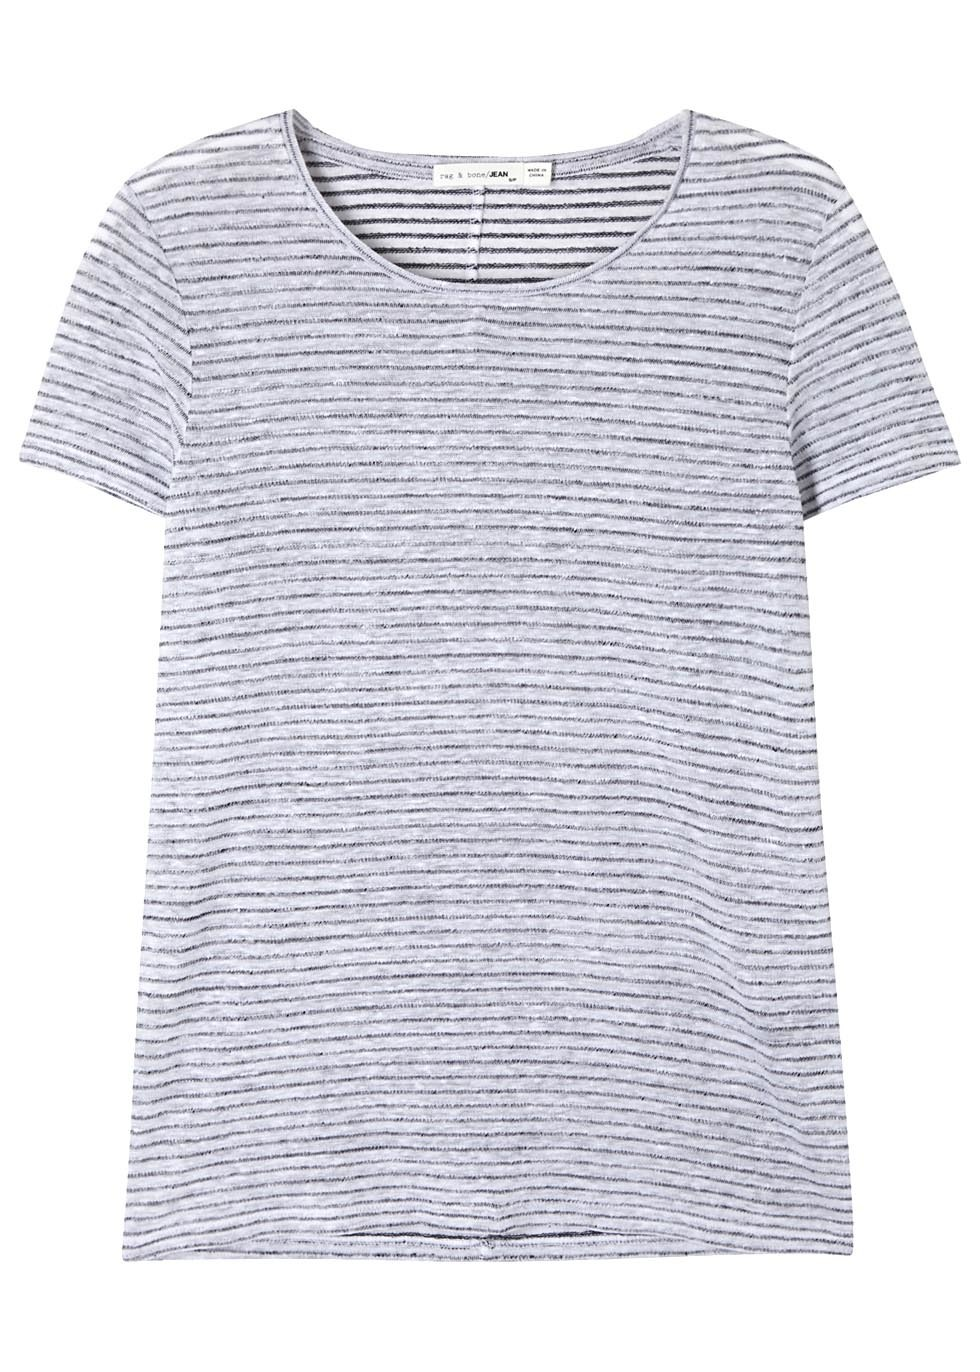 Summer Striped Linen Blend T Shirt - pattern: horizontal stripes; style: t-shirt; secondary colour: white; predominant colour: navy; occasions: casual; length: standard; fibres: linen - mix; fit: body skimming; neckline: crew; sleeve length: short sleeve; sleeve style: standard; pattern type: fabric; texture group: jersey - stretchy/drapey; multicoloured: multicoloured; season: s/s 2016